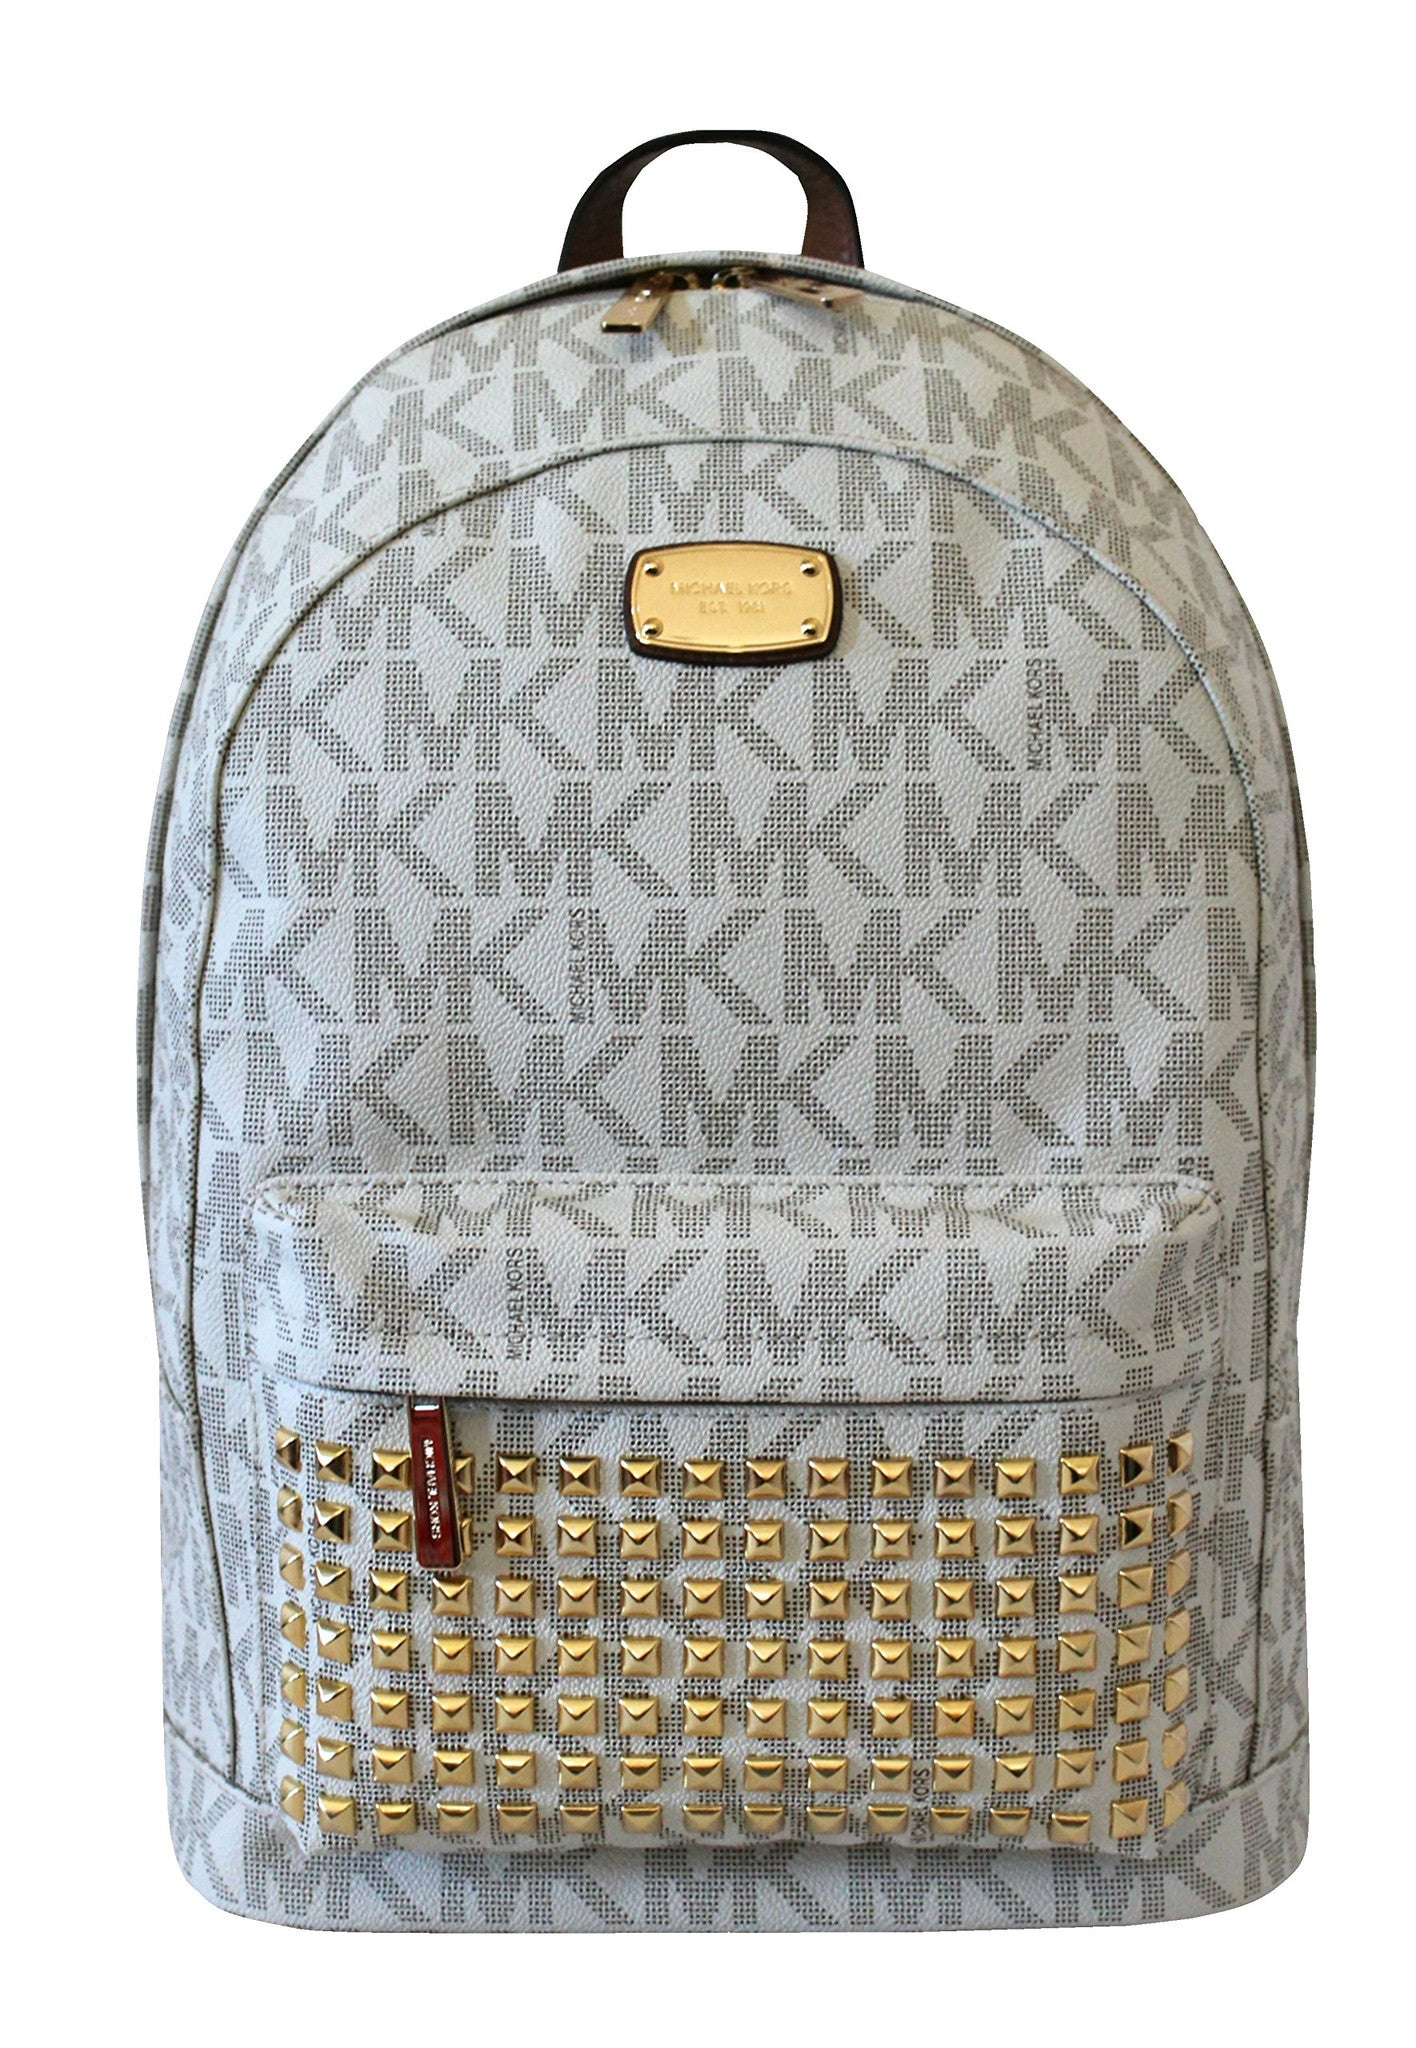 95961d6556ffd0 closeout michael michael kors large printed mk studded jet set item  backpack vanilla 6862b ab444